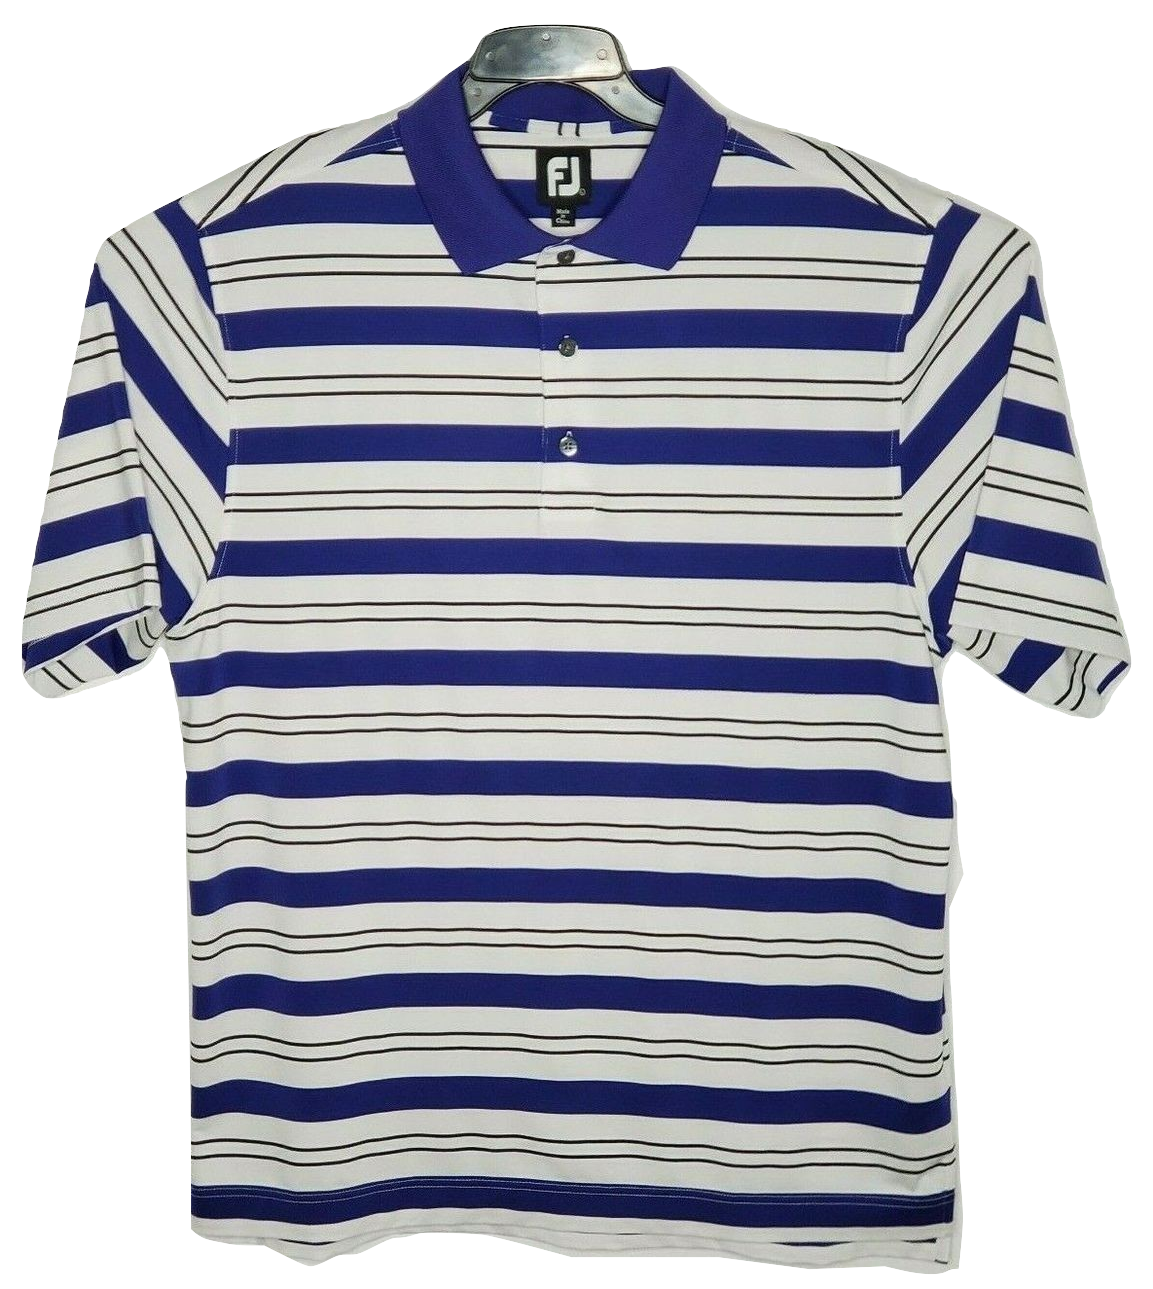 Primary image for FootJoy Golf Polo Shirt Performance Stretch Blue/White/Blk Stripes FJ Mens L